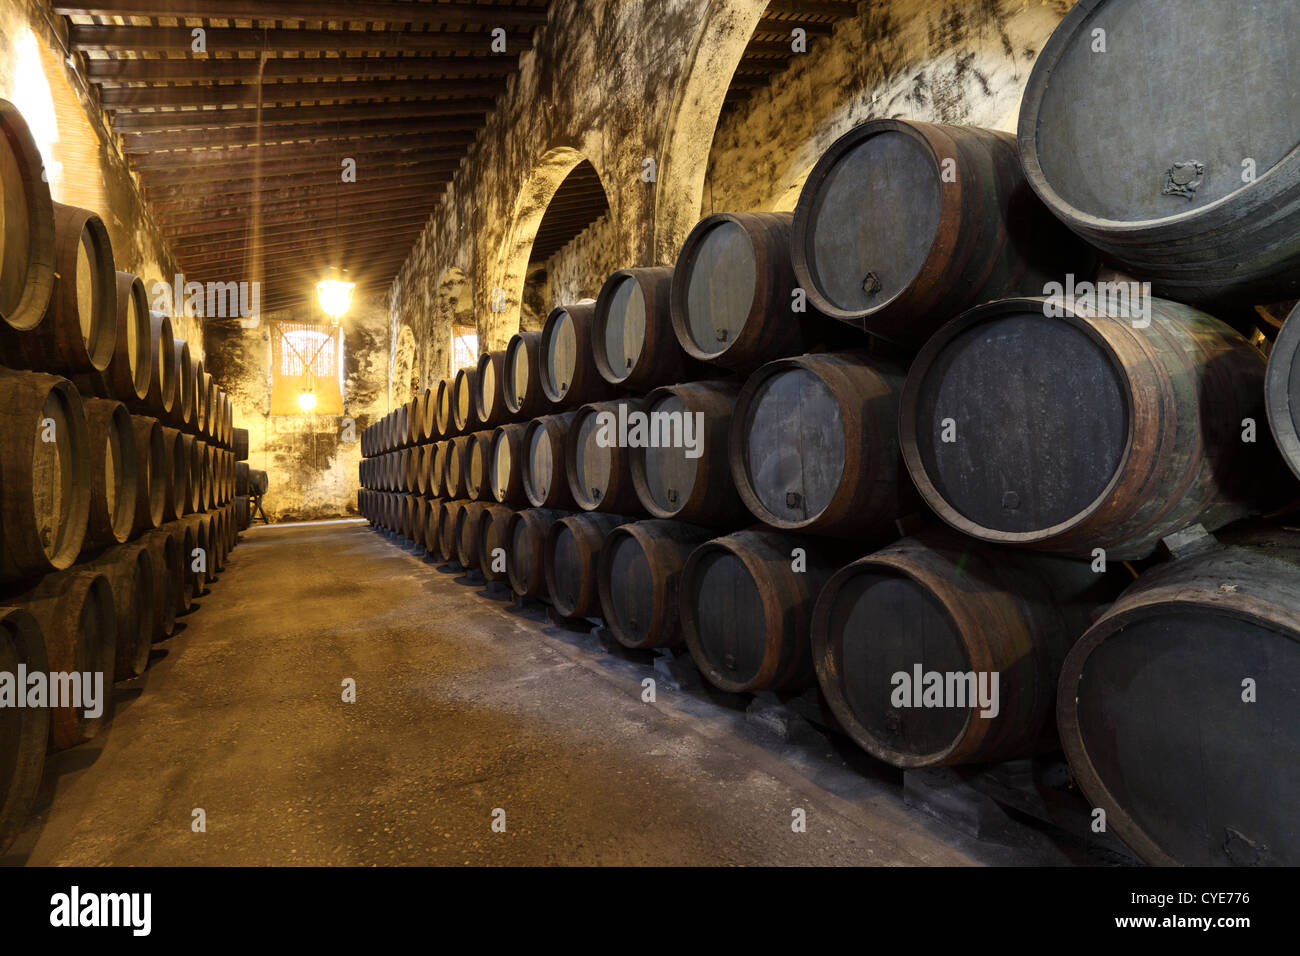 Old wine celler with wooden barrels - Stock Image